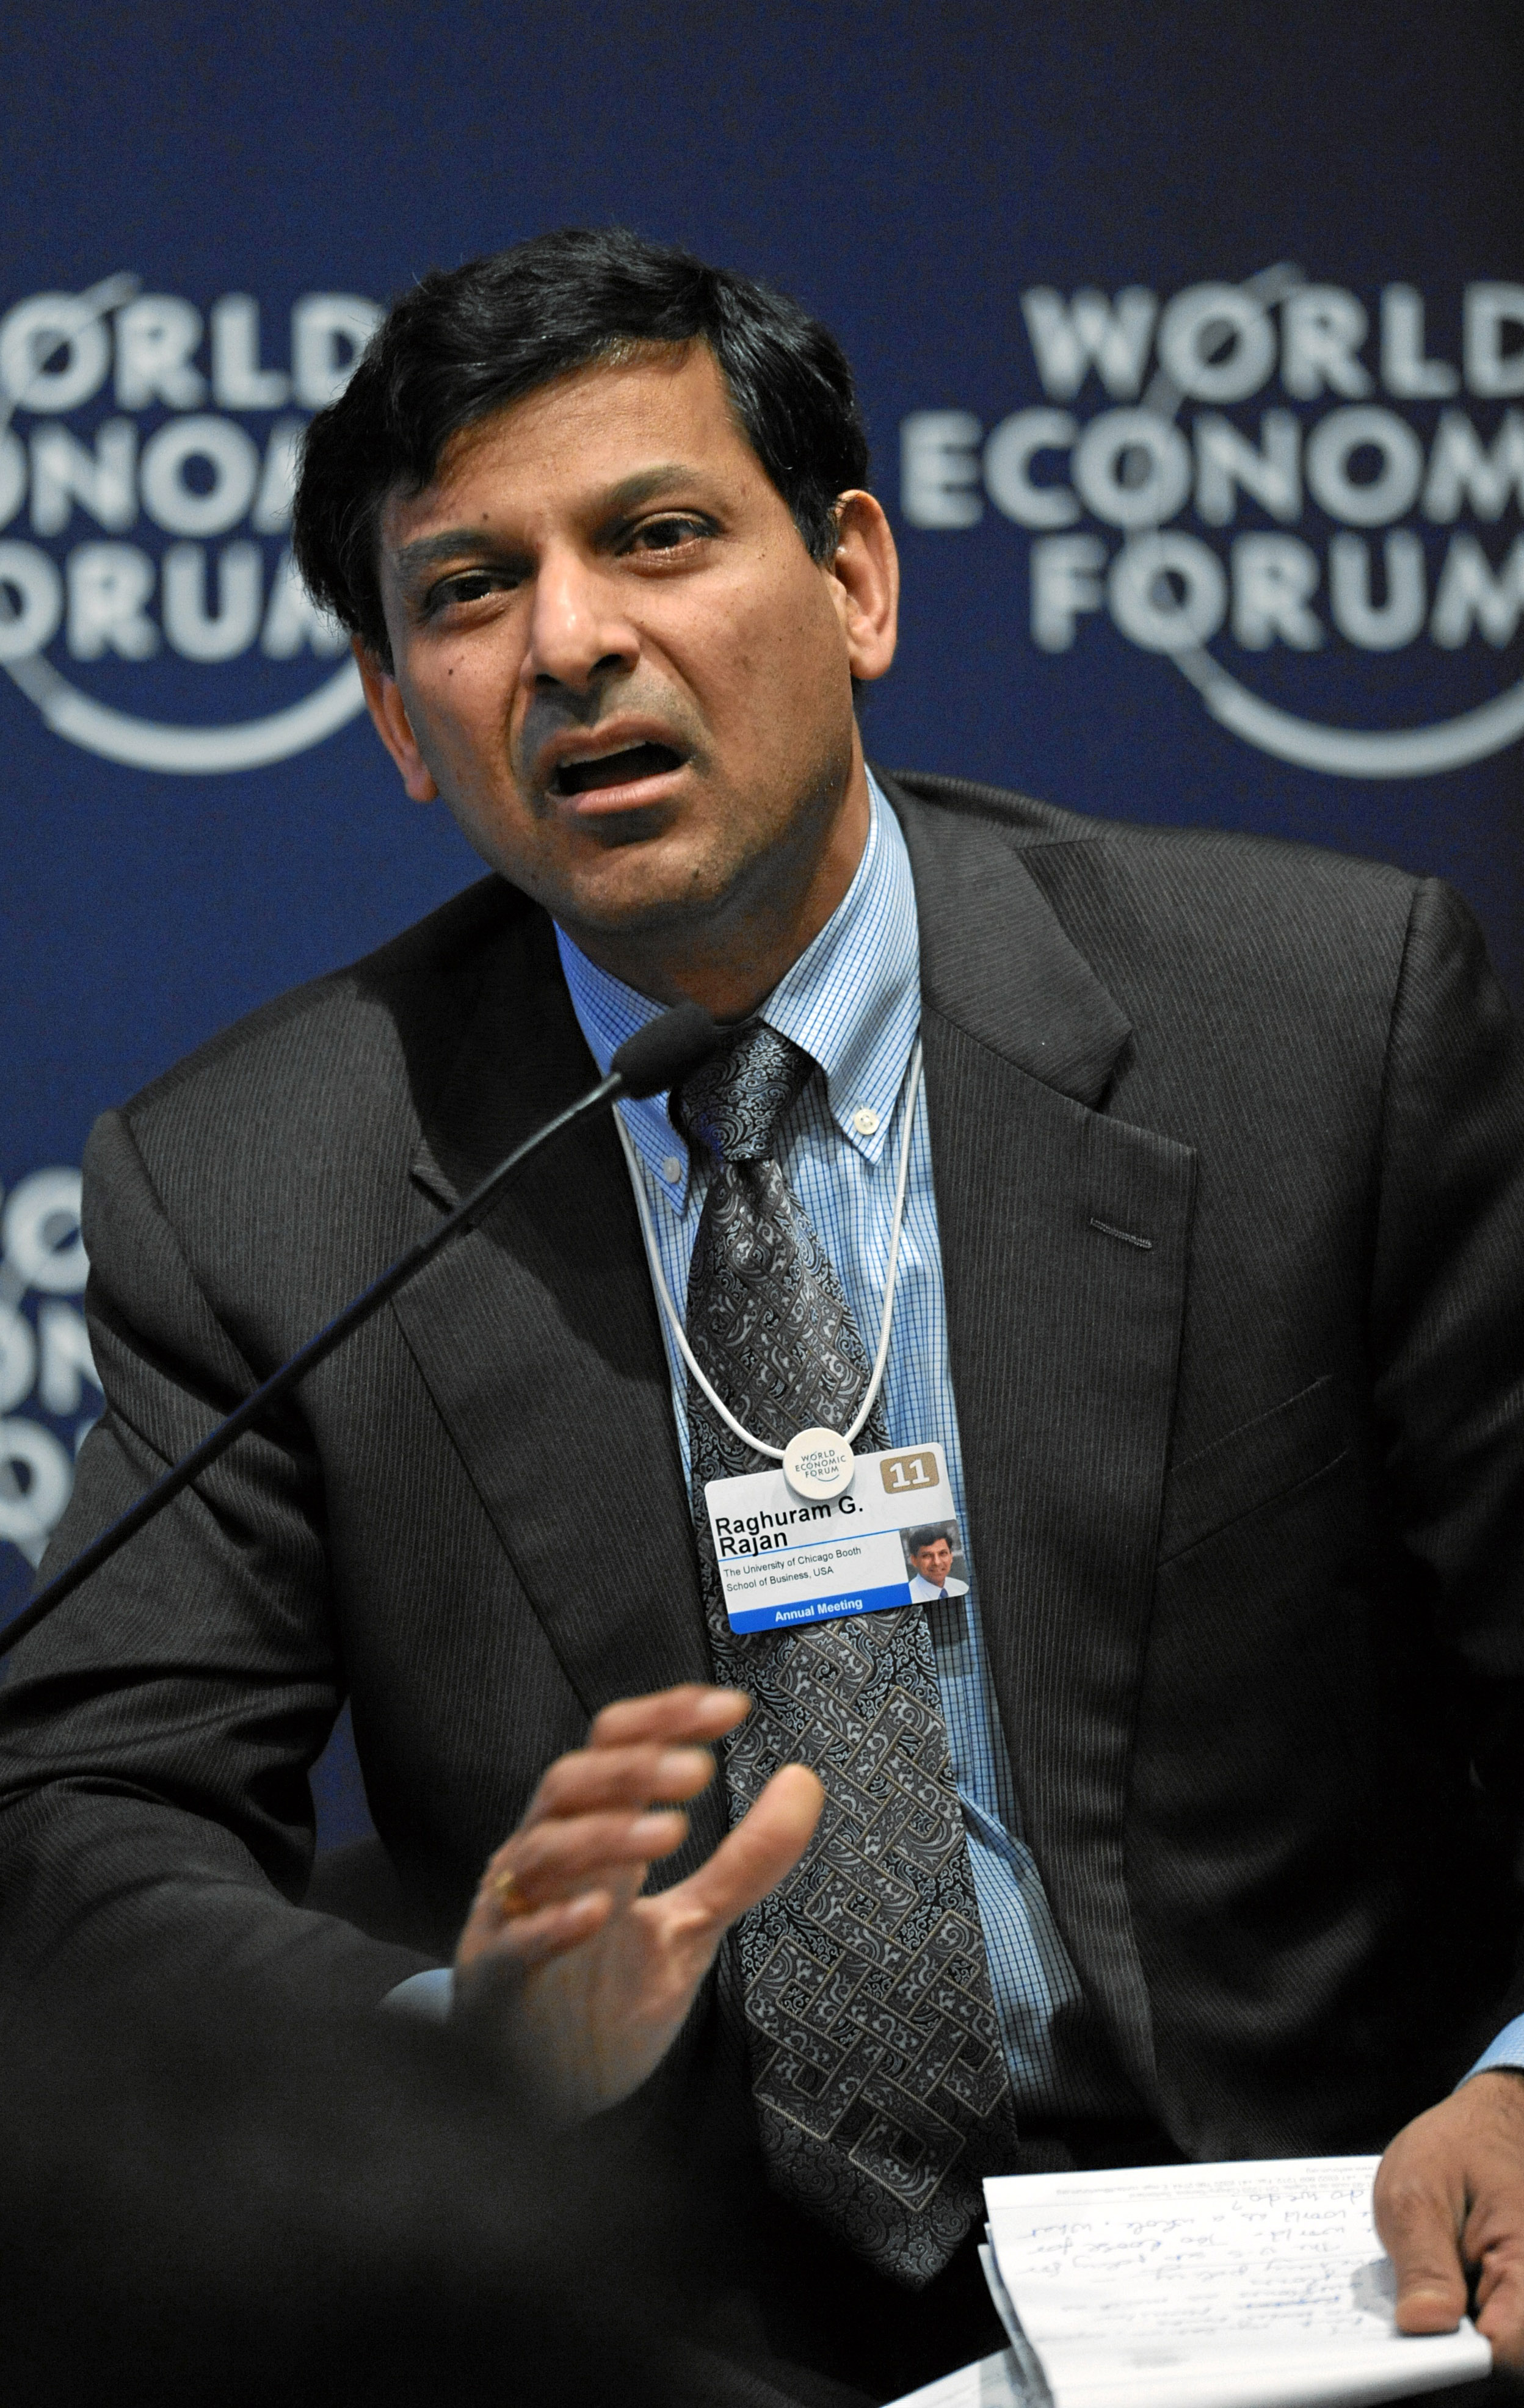 Dr. Raghuram Rajan speaking at the World Economic Forum. Dr. Rajan first joined Booth in 1991, and prior to returning in 2016 was the Governor of the Reserve Bank of India